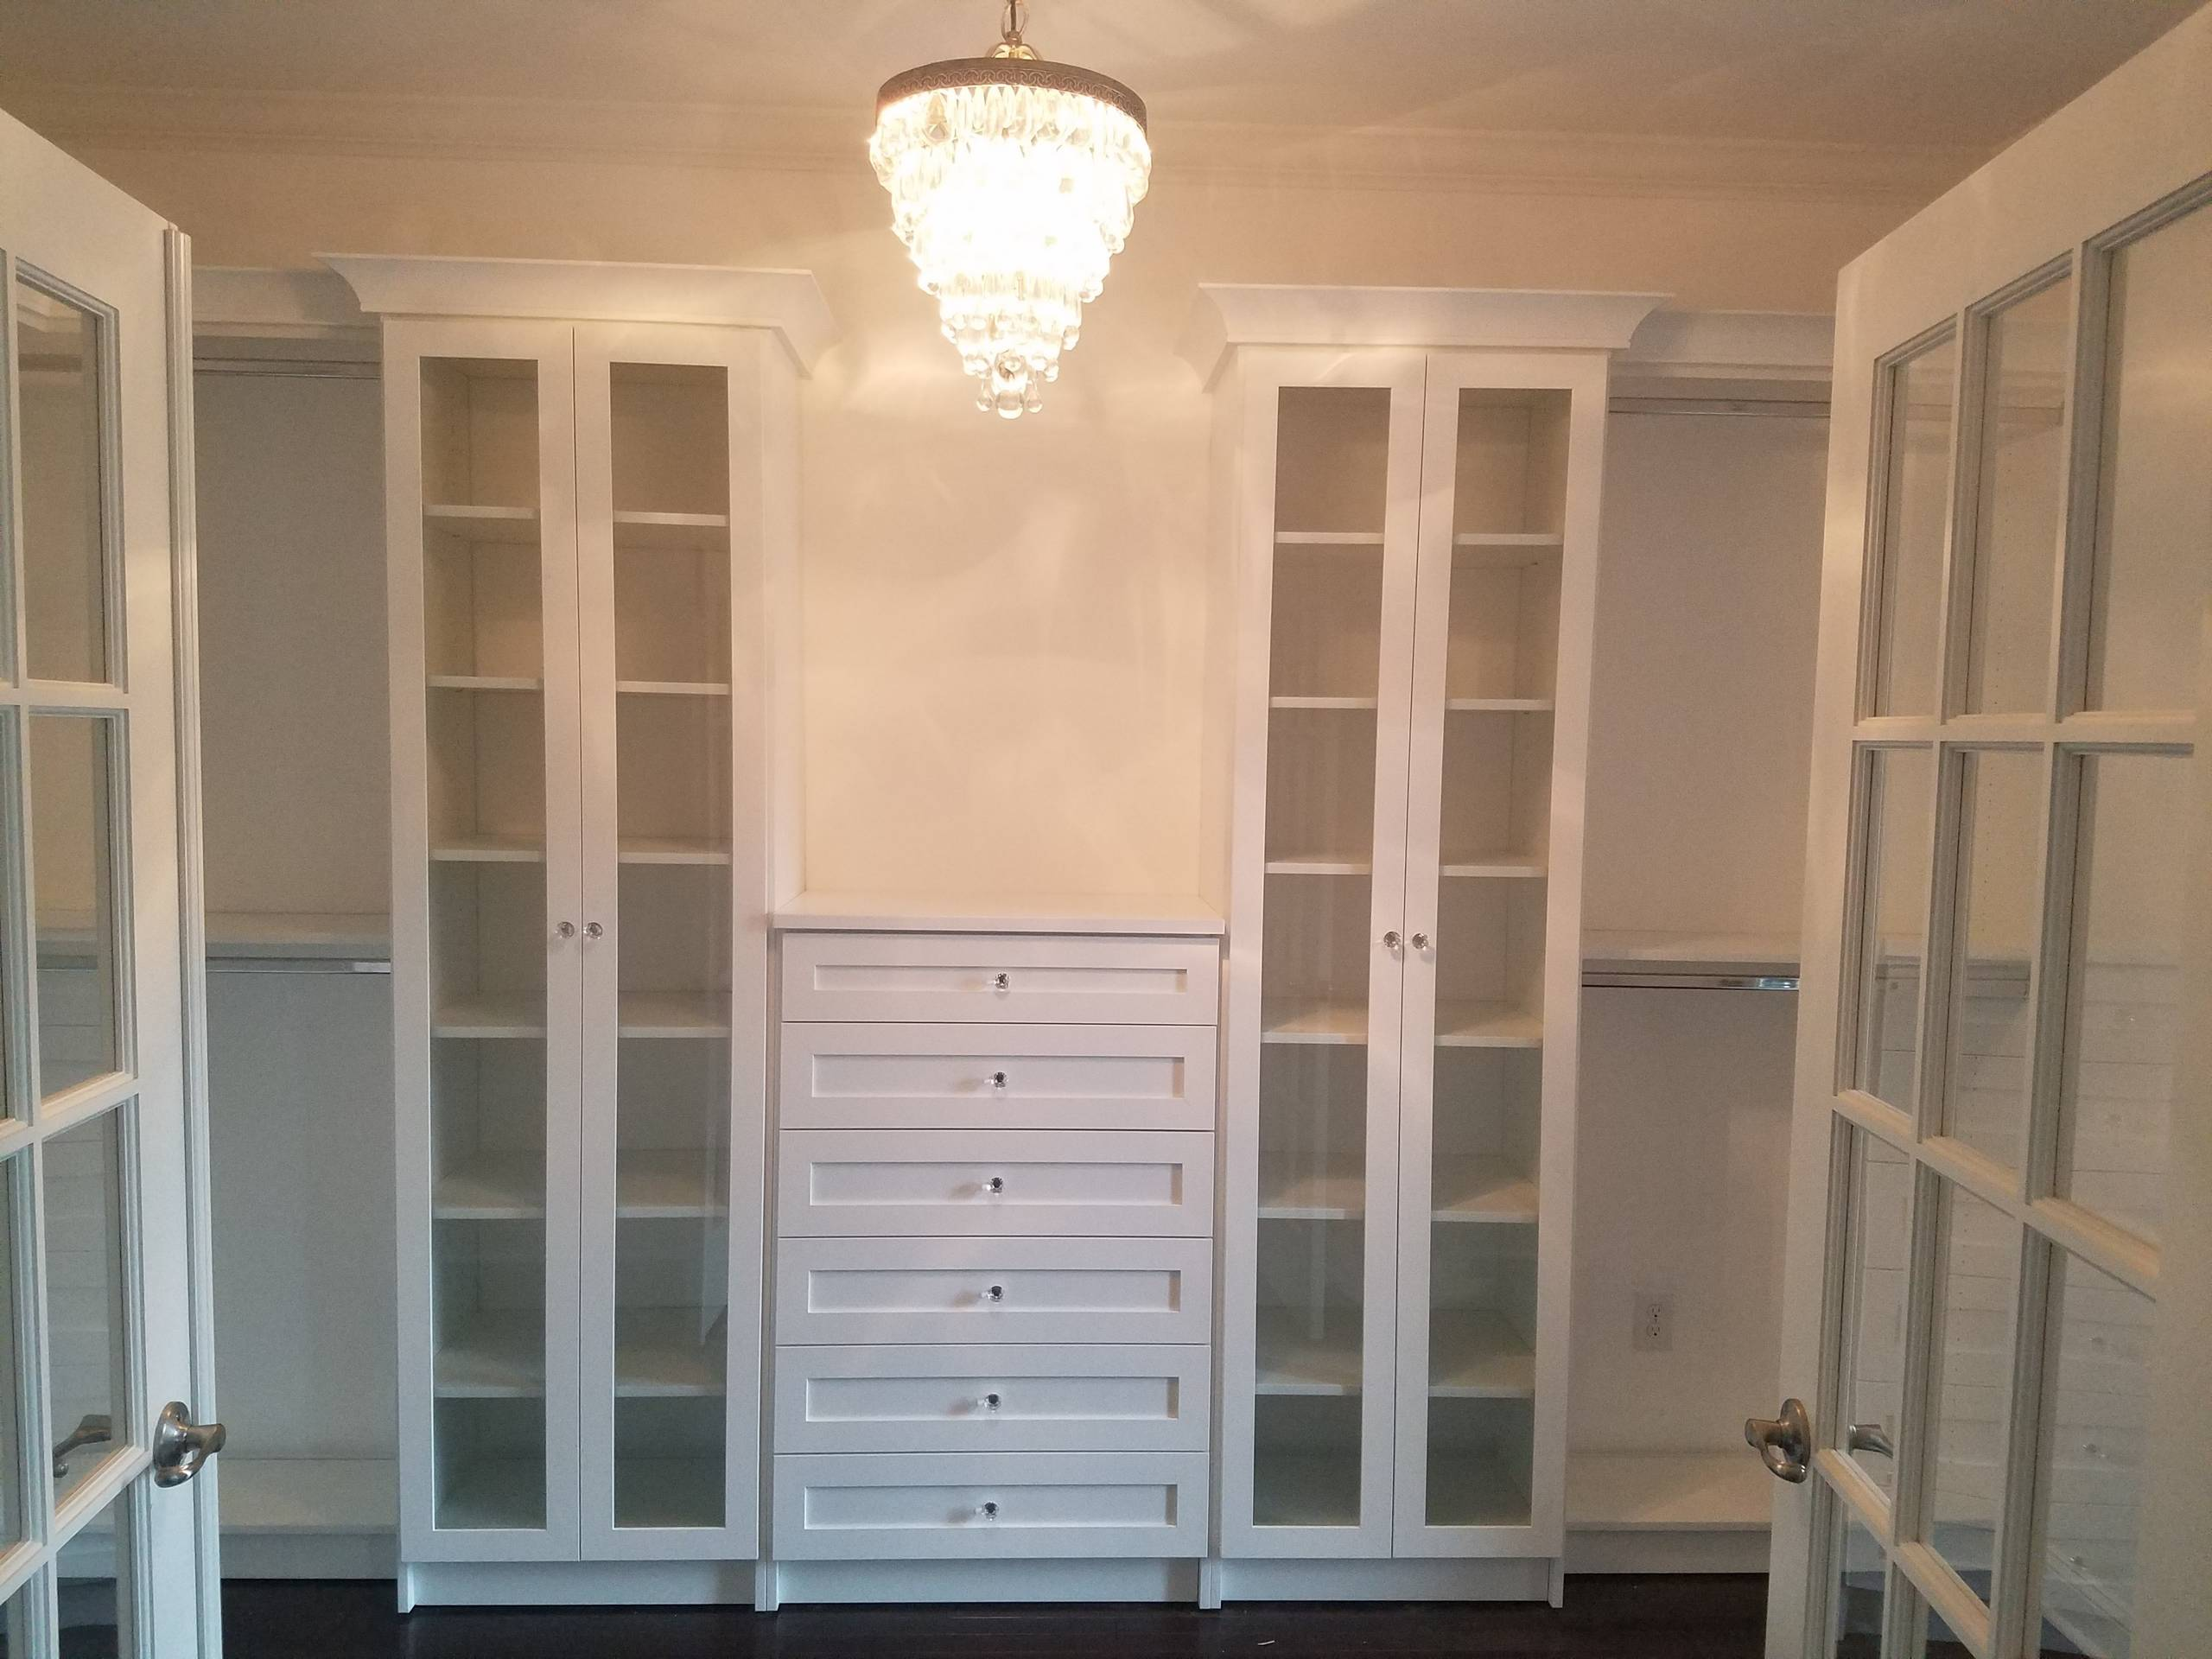 White walk in closet with shaker style drawer fronts and crown molding.  Also includes glass cabinets